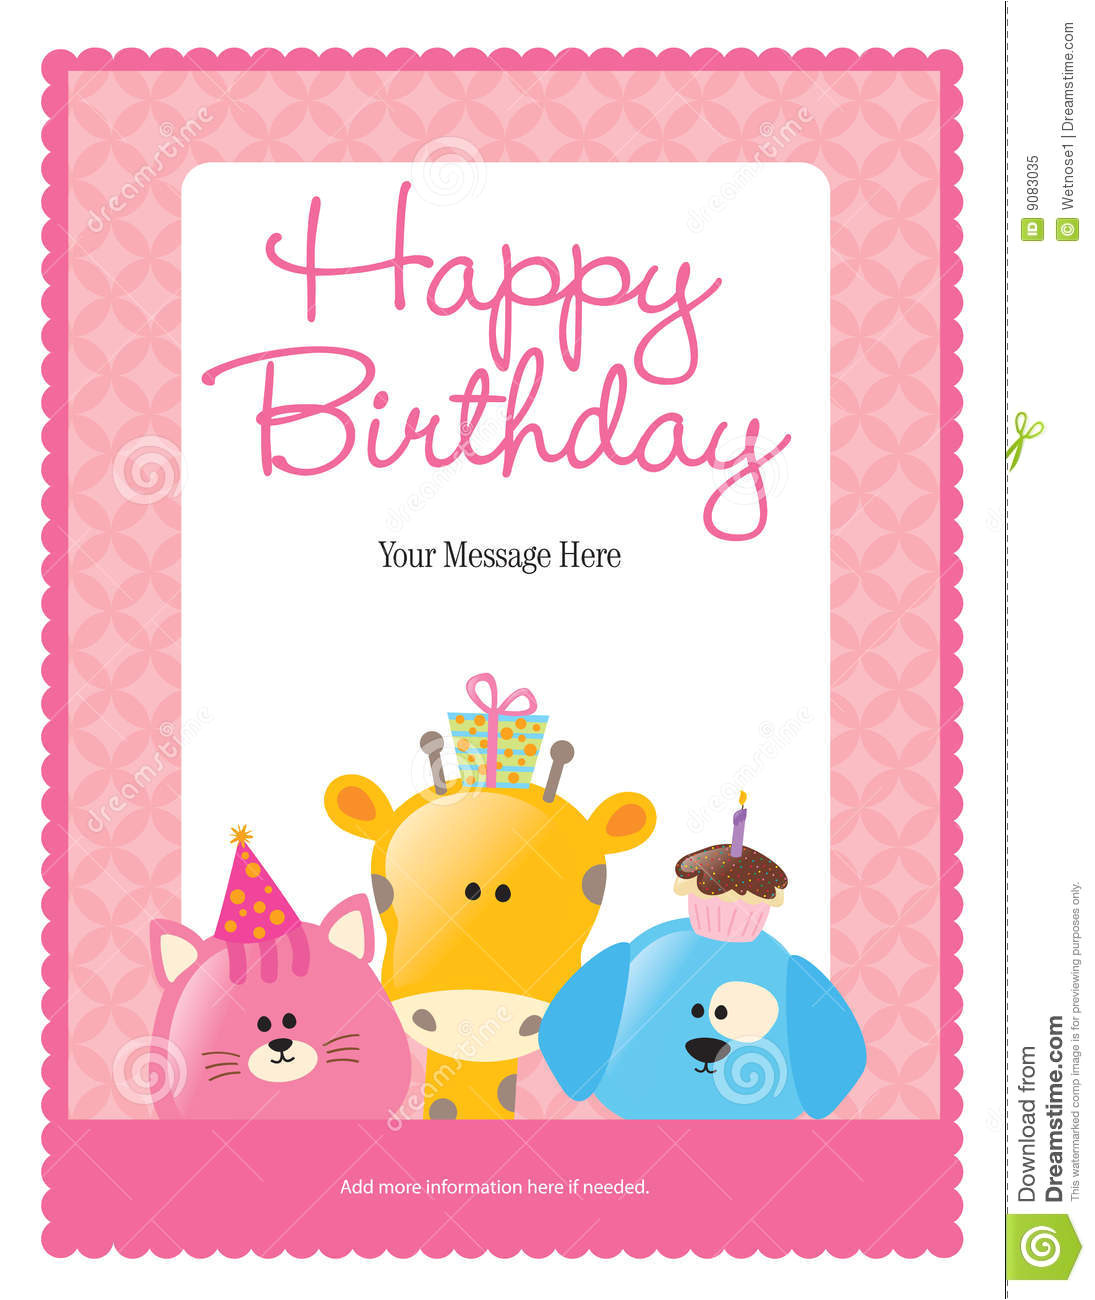 royalty free stock photo 8 5x11 birthday flyer poster template image9083035